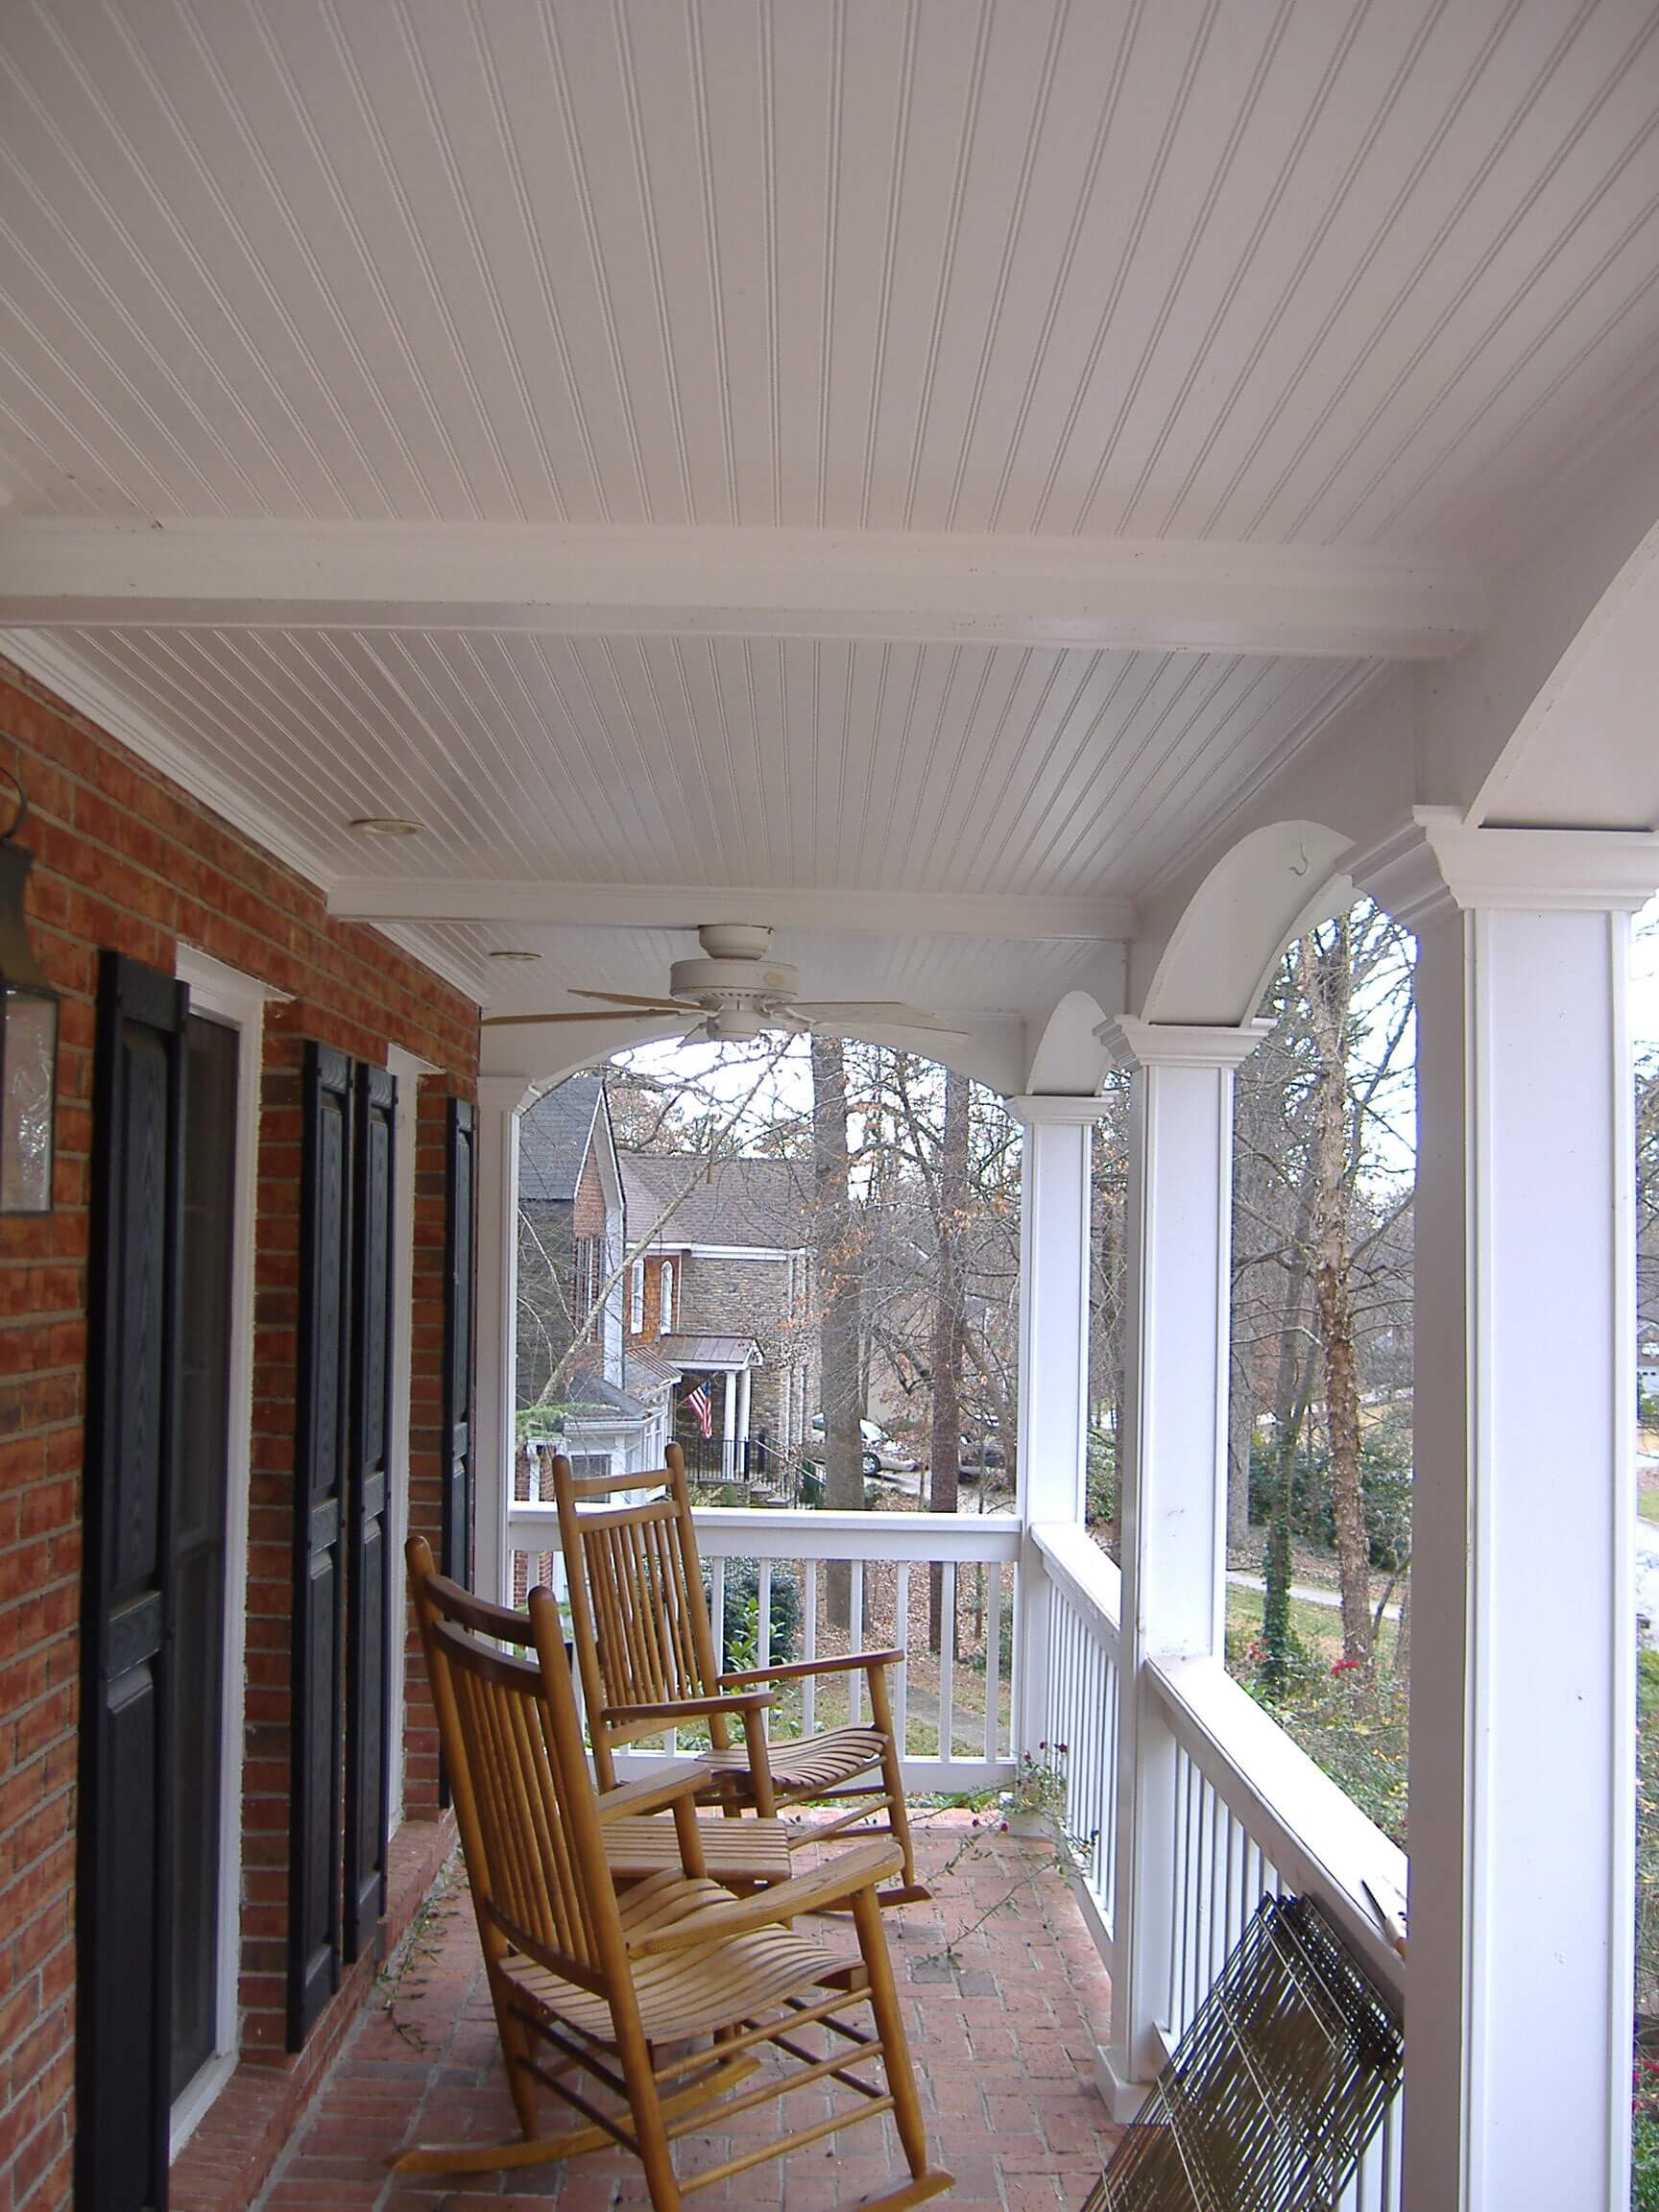 images porch charming with porches designs inspirations houses homes for small mobile front ideas